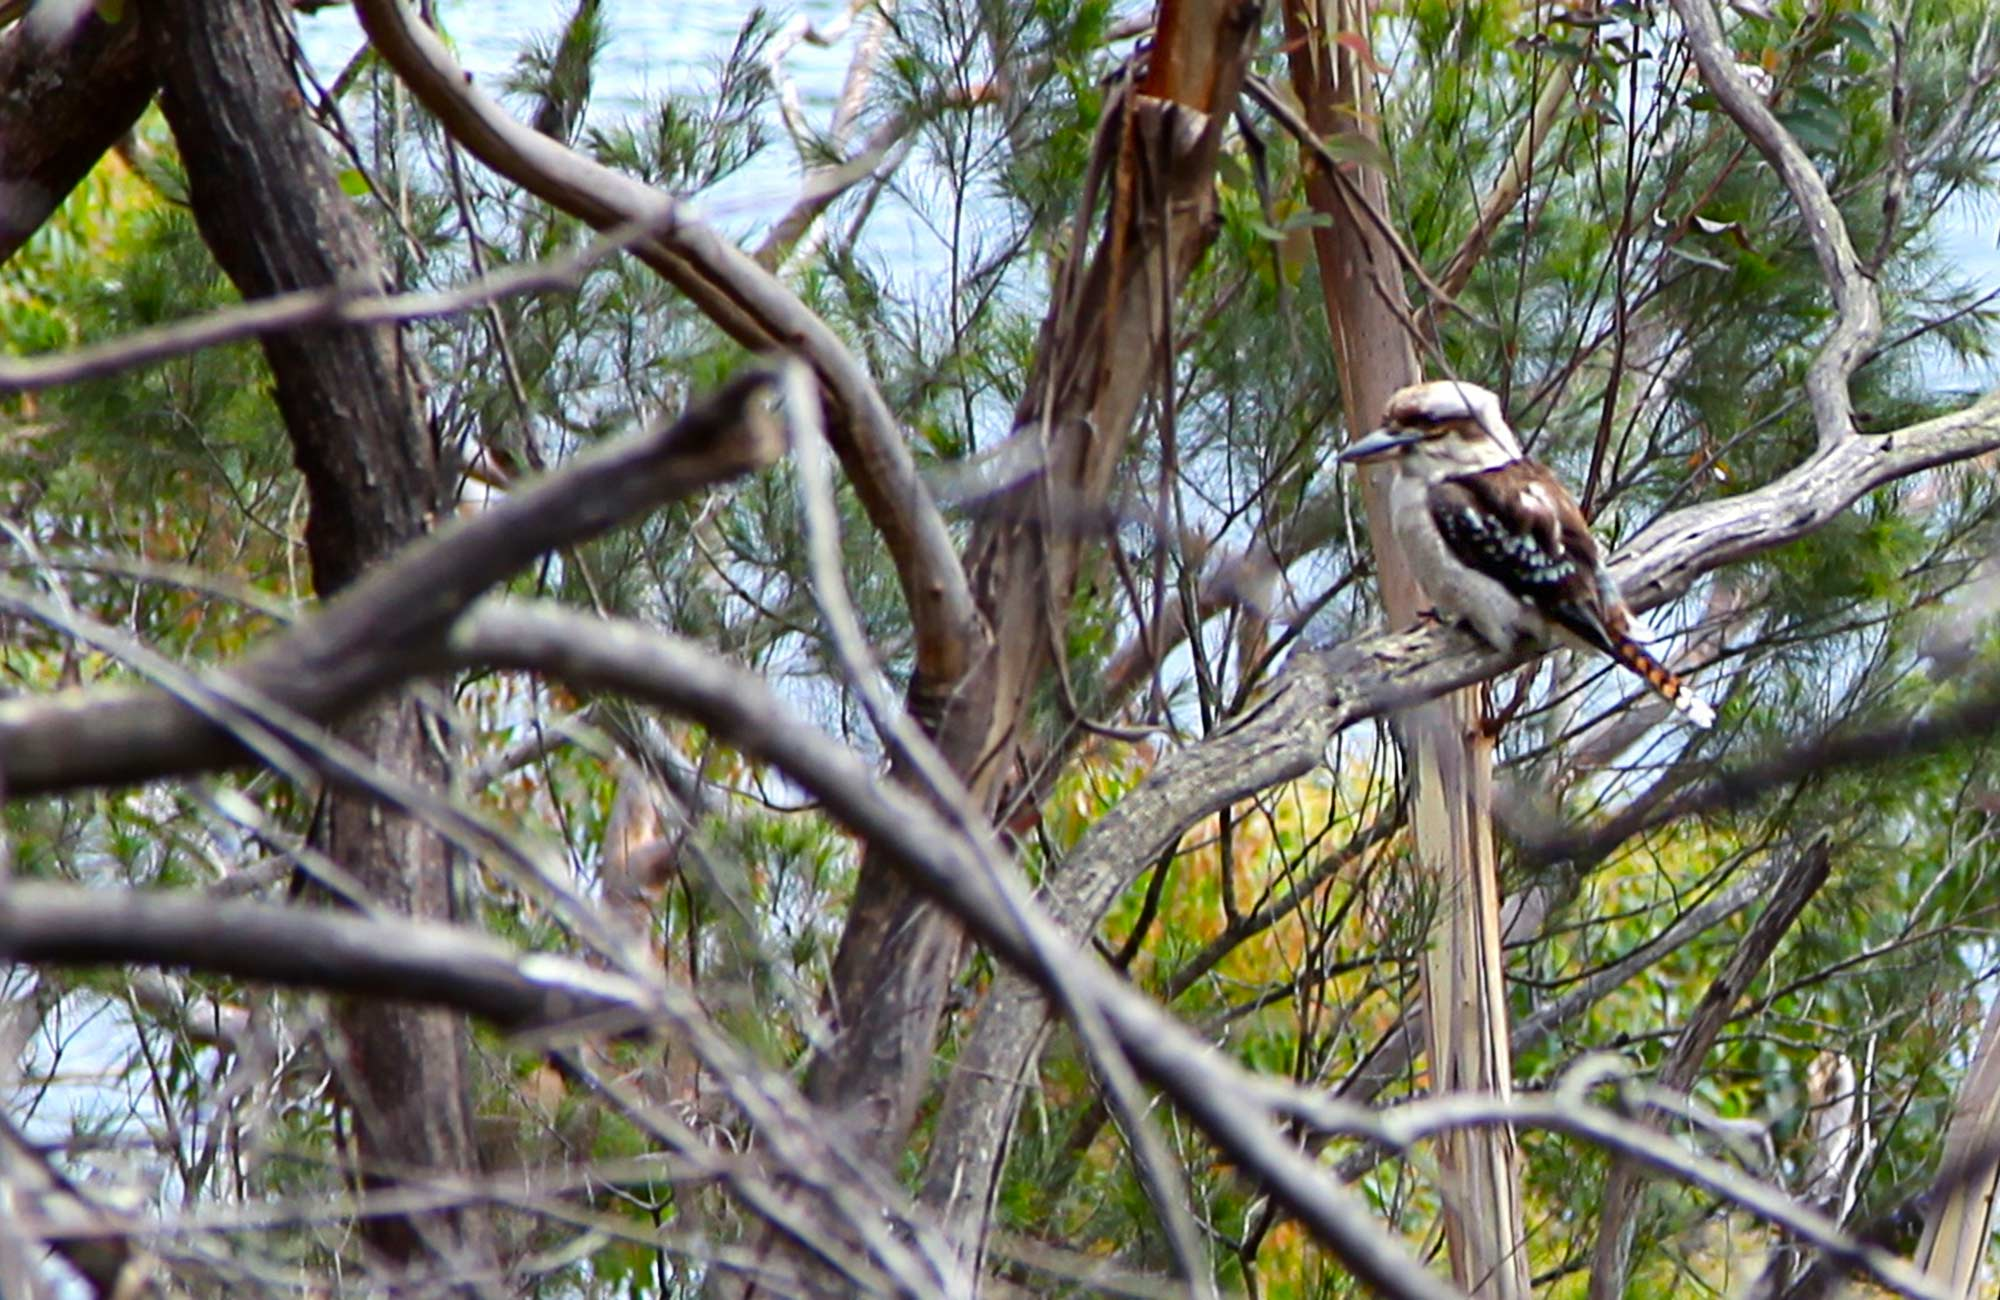 Kookaburra in the trees. Photo:Shaun Sursok